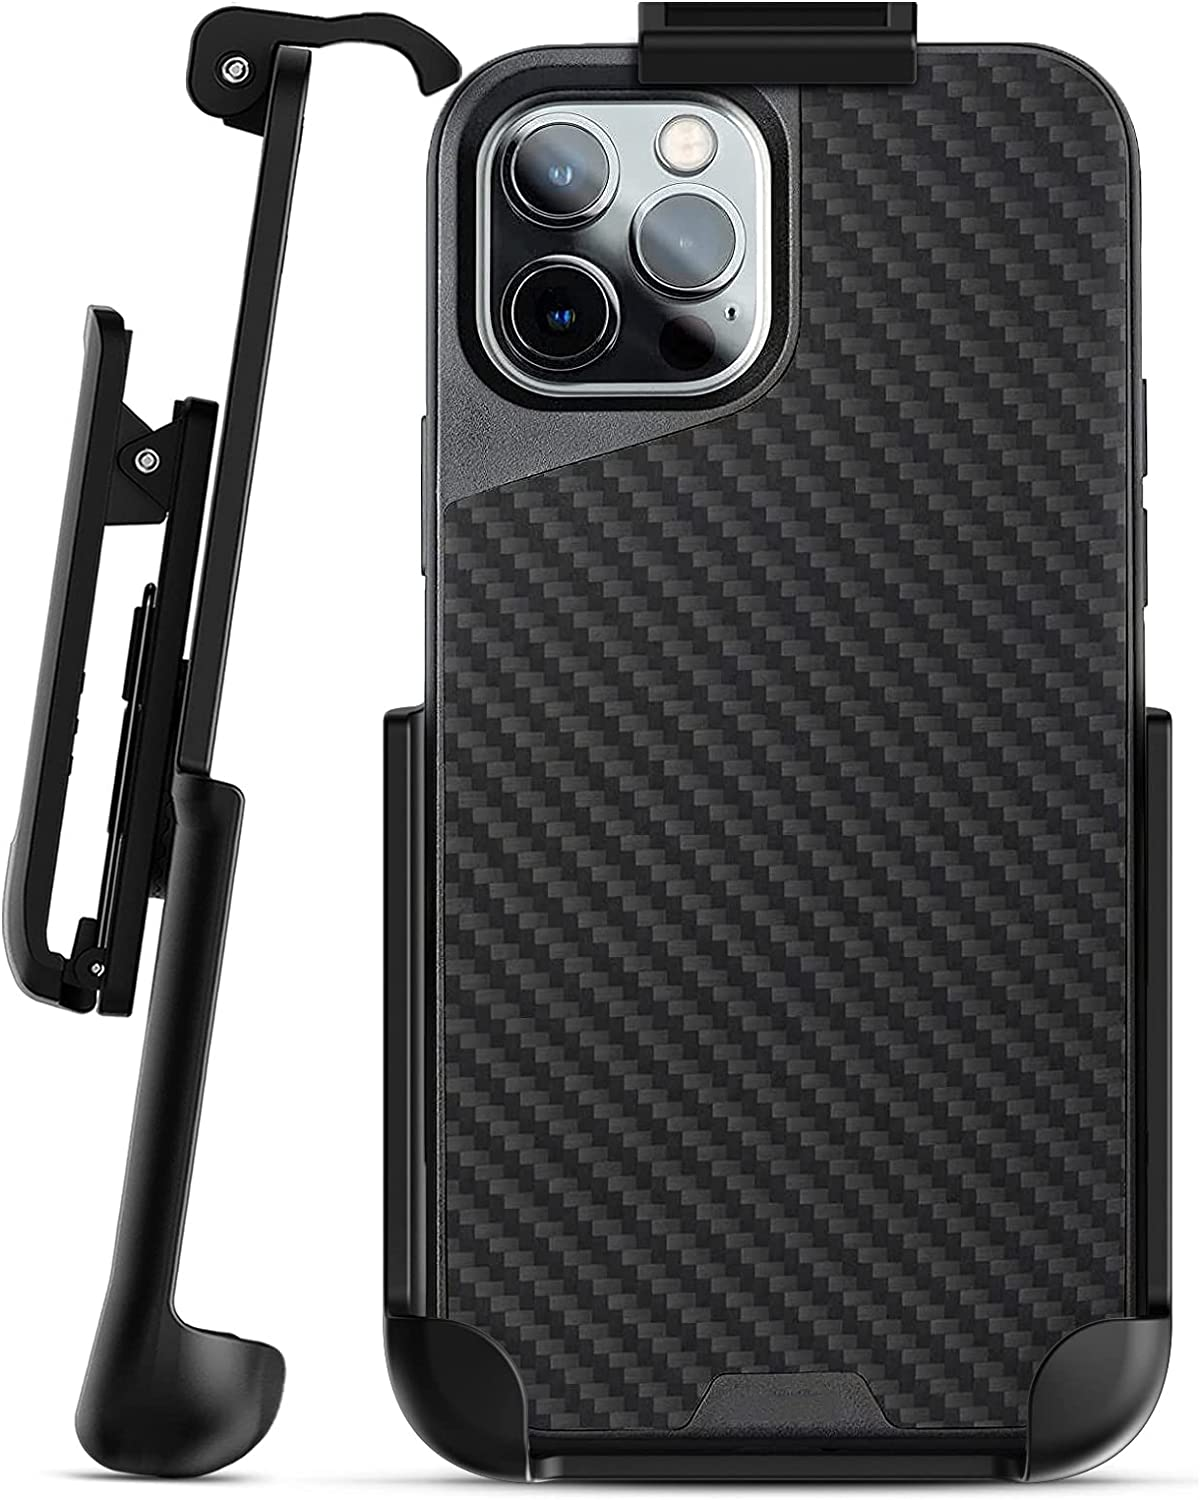 Encased Belt Clip Holster for Mous Limitless 3.0 Case - iPhone 12/ 12 Pro (Case not Included)